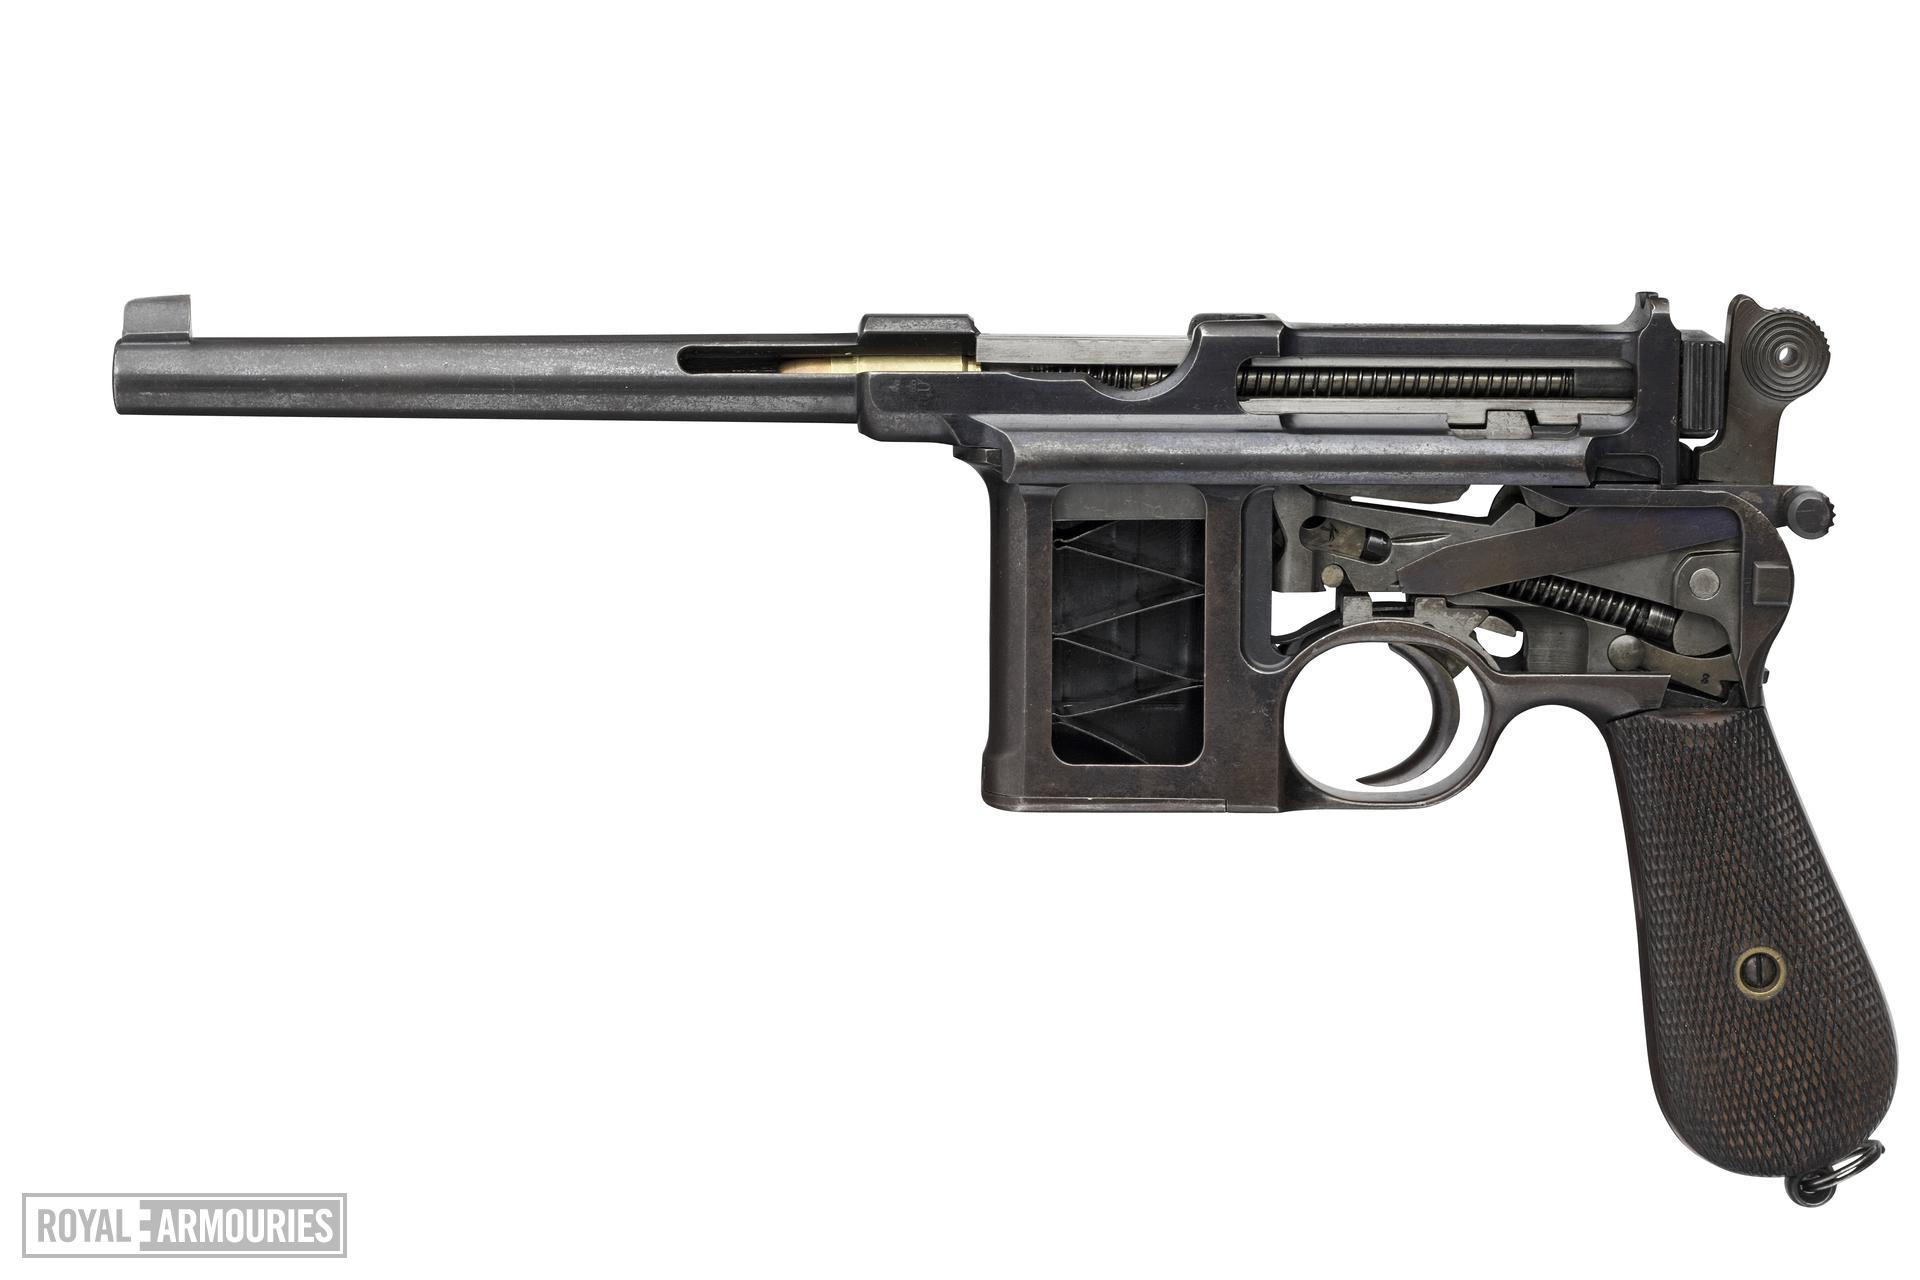 Centrefire self-loading pistol - Mauser C96 sectioned Centrefire self-loading pistol, Mauser C96 sectioned, Germany, 1896.